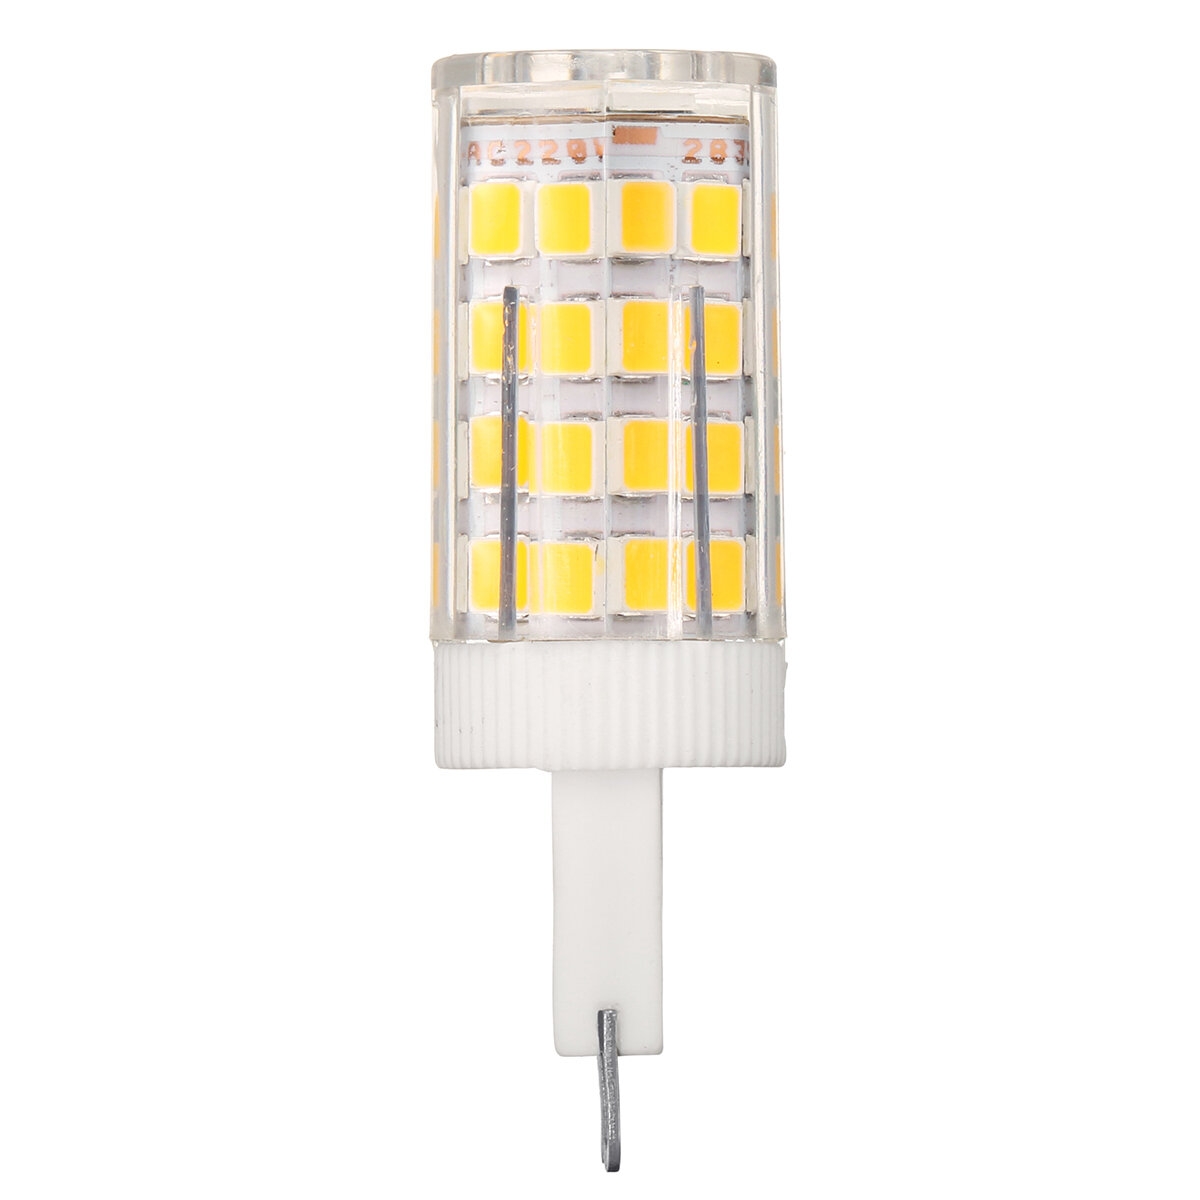 AC110-240V 9W G9 SMD2835 Non-dimmable 75 LED Ceramic Corn Light Bulb for Outdoor Home Decoration - 9